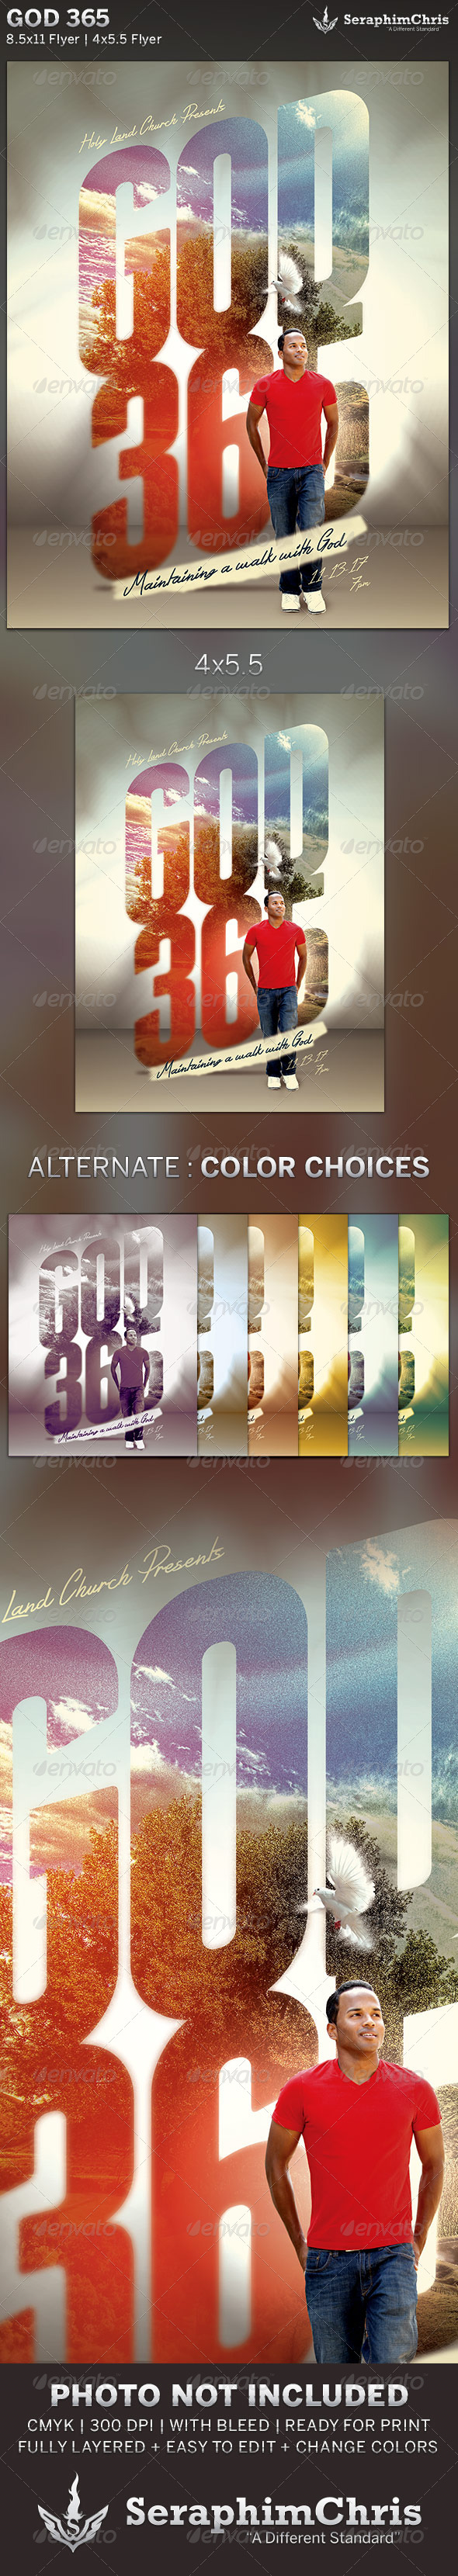 GraphicRiver God 365 Church Flyer Template 6002165